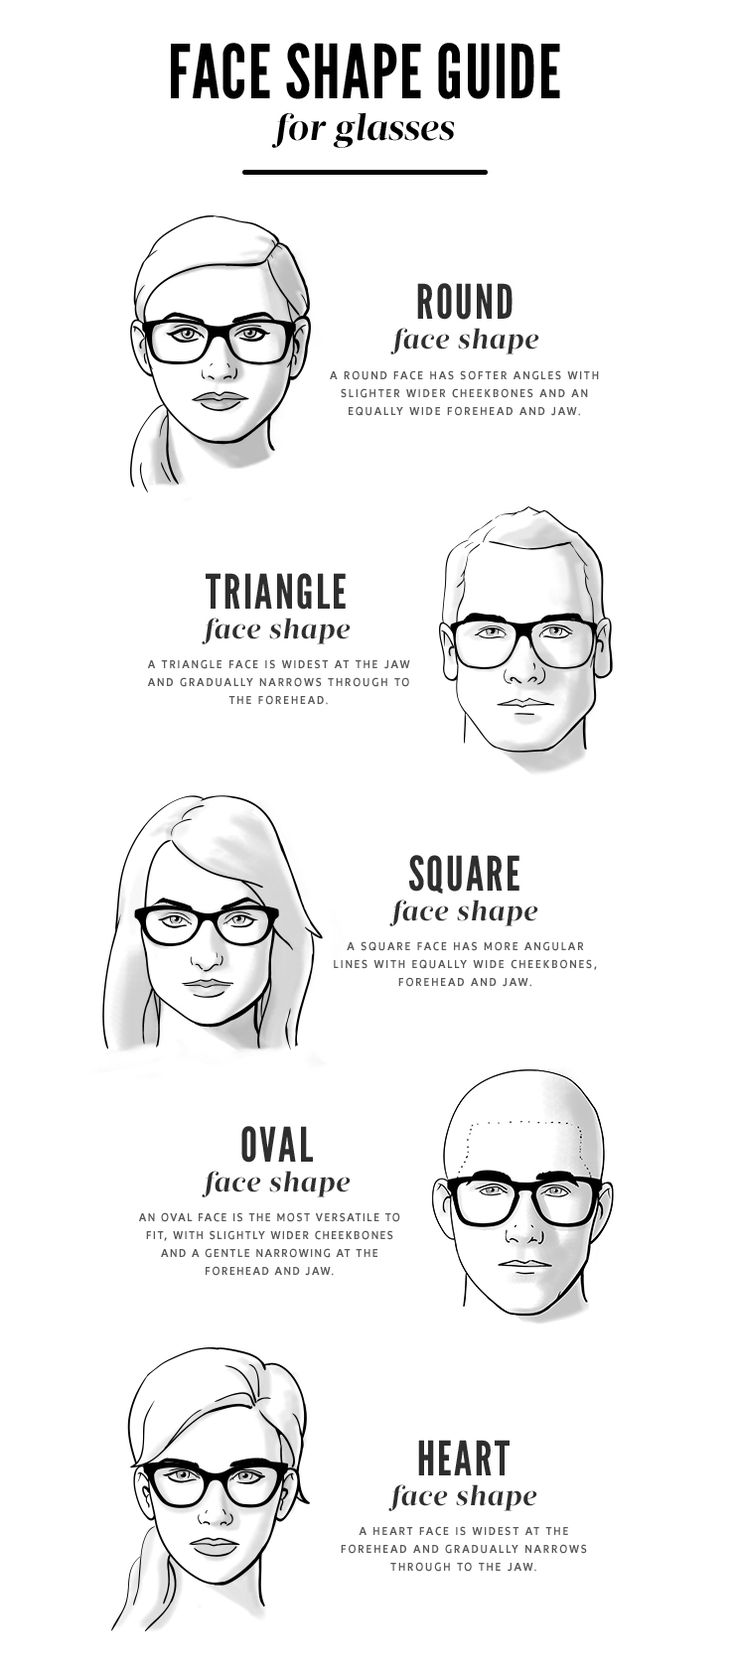 45c221bfda Face Shape Guide for Glasses